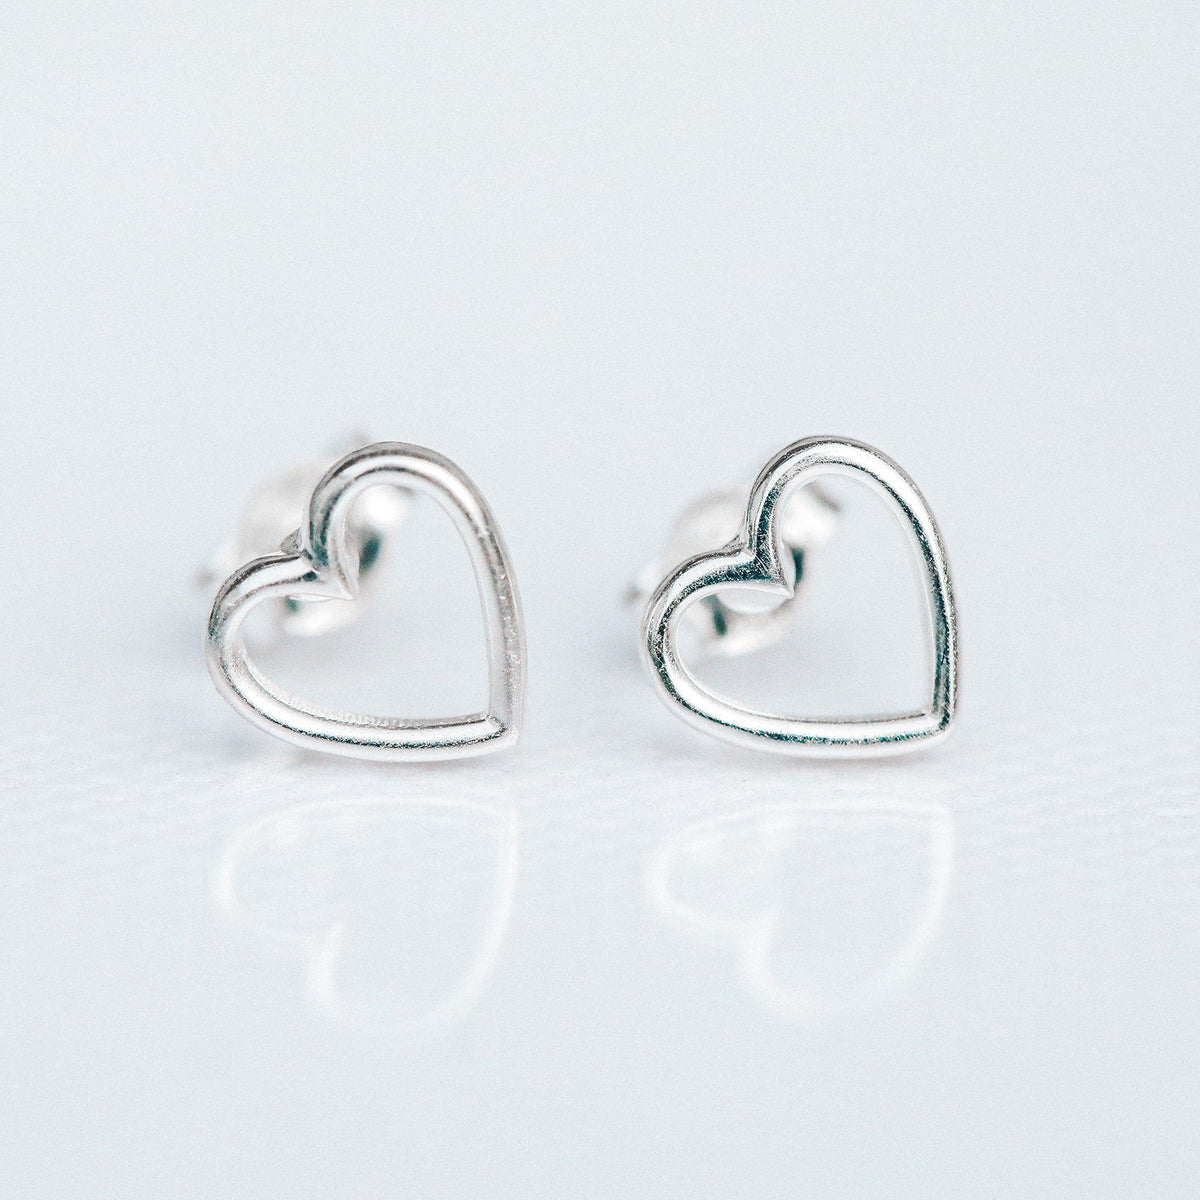 Open Heart Stud Earrings 5